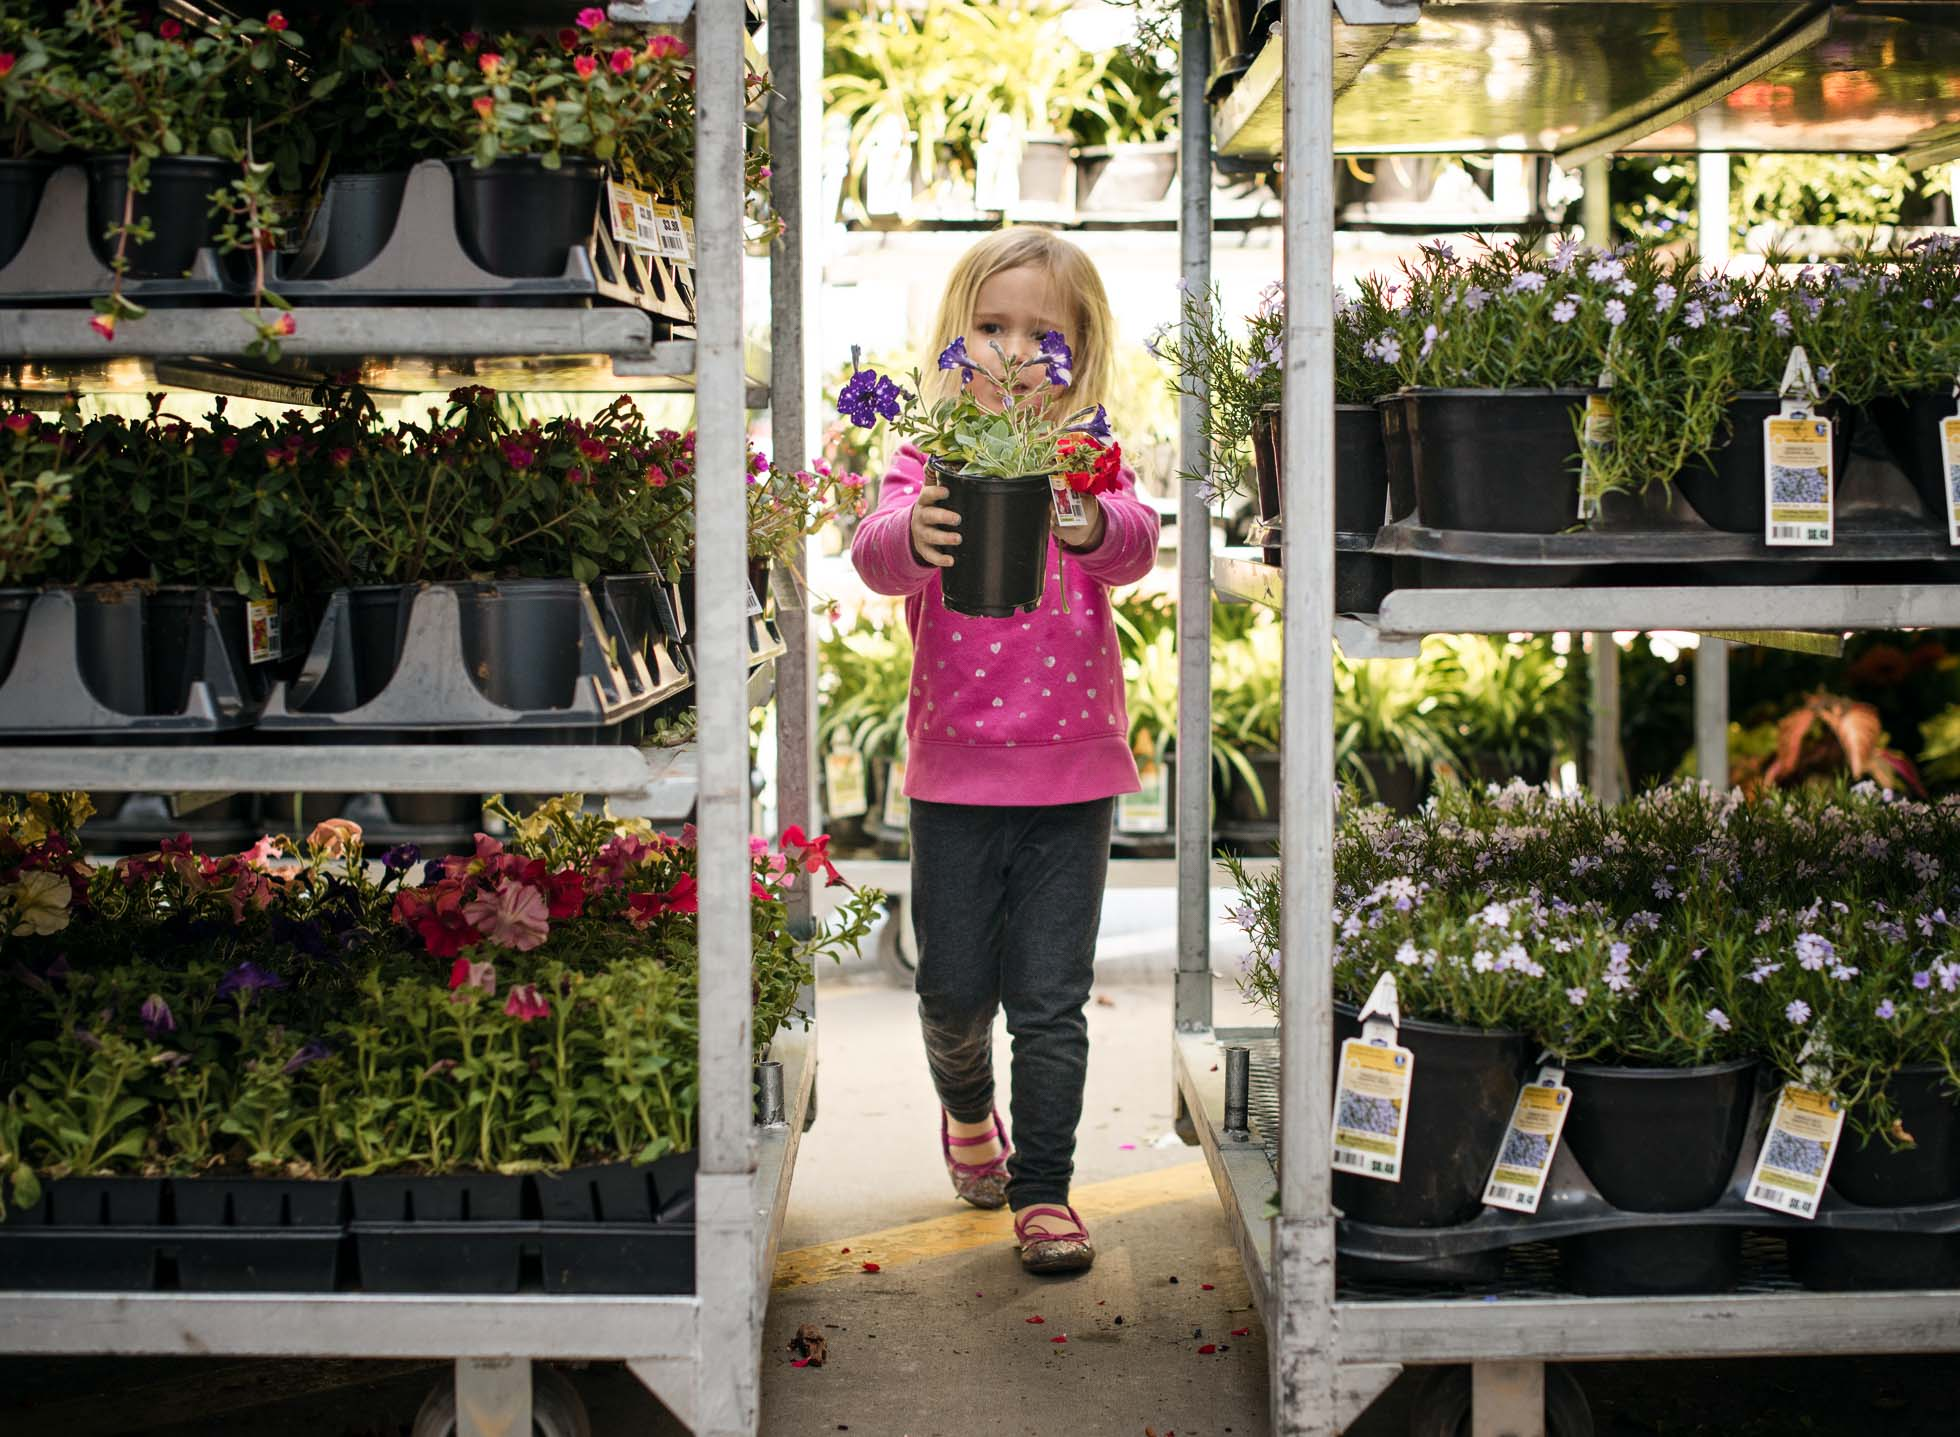 girl in pink shopping for flowers at lowes you like this purple one child girl shopping lowes flowers plants gardening edmond ok photographer oklahoma city natural light photographer kate luber photography